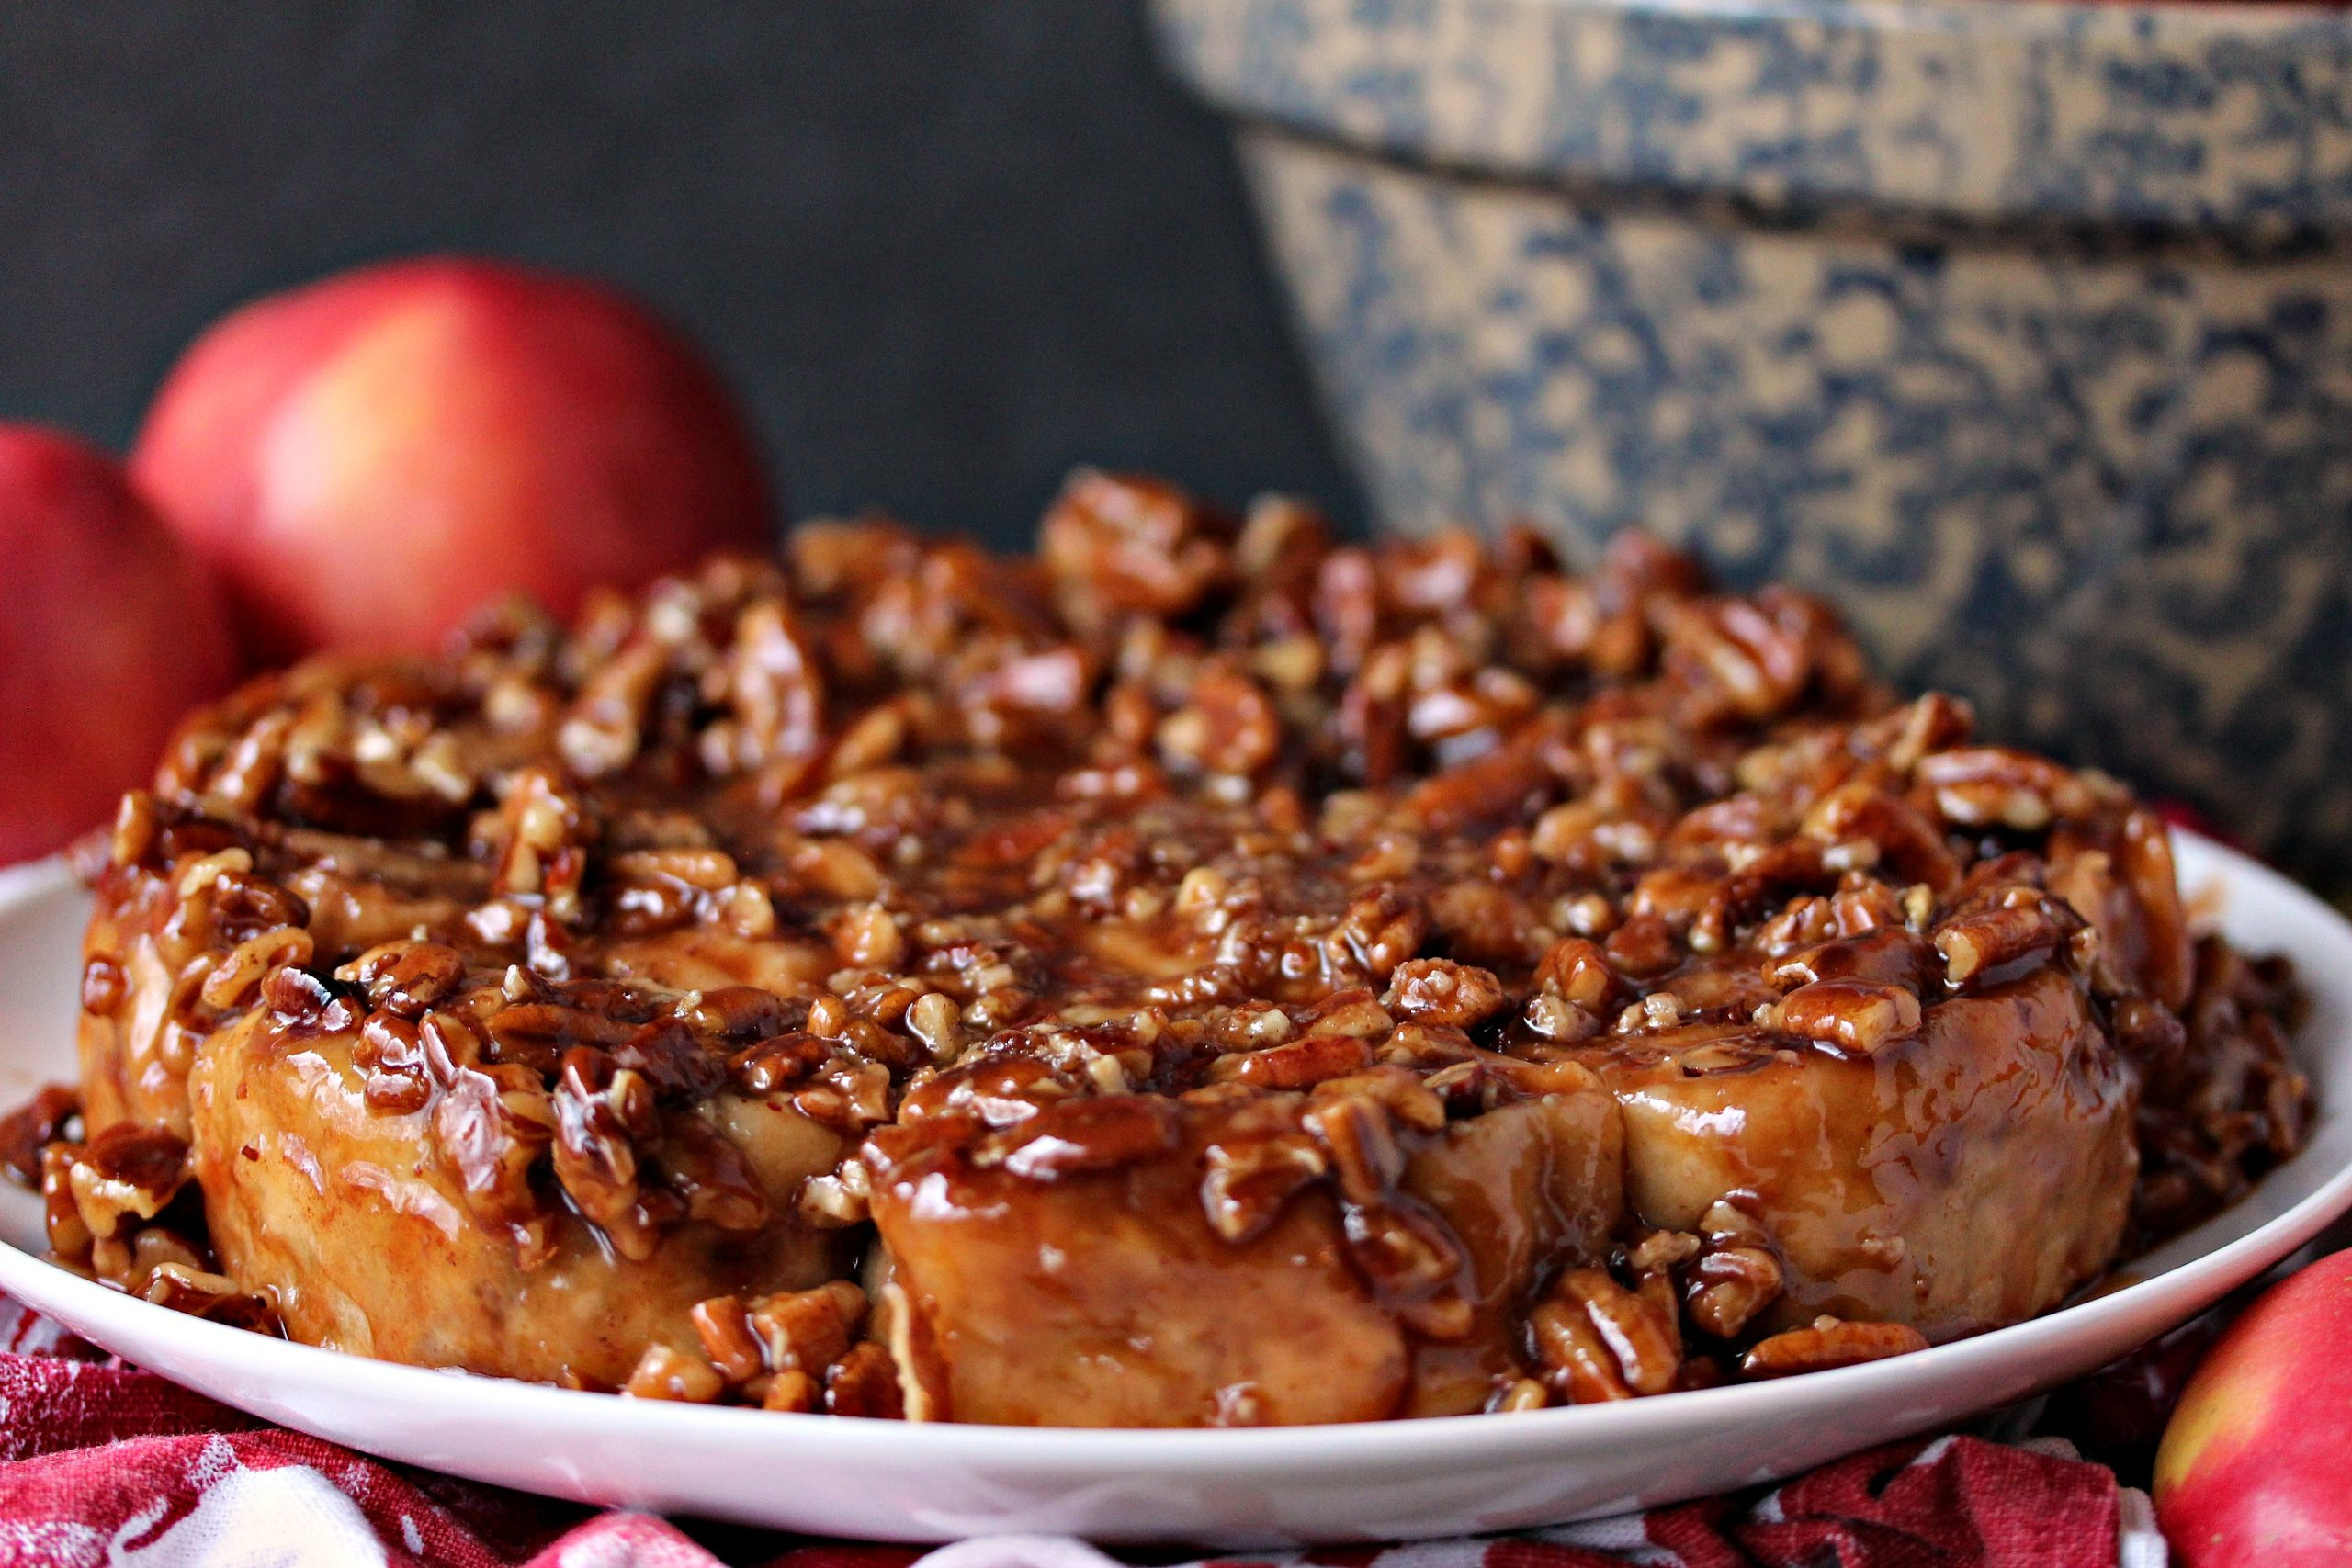 This sticky bun recipe perfectly combines apples, pecans and caramel for the most amazing breakfast you will ever eat.